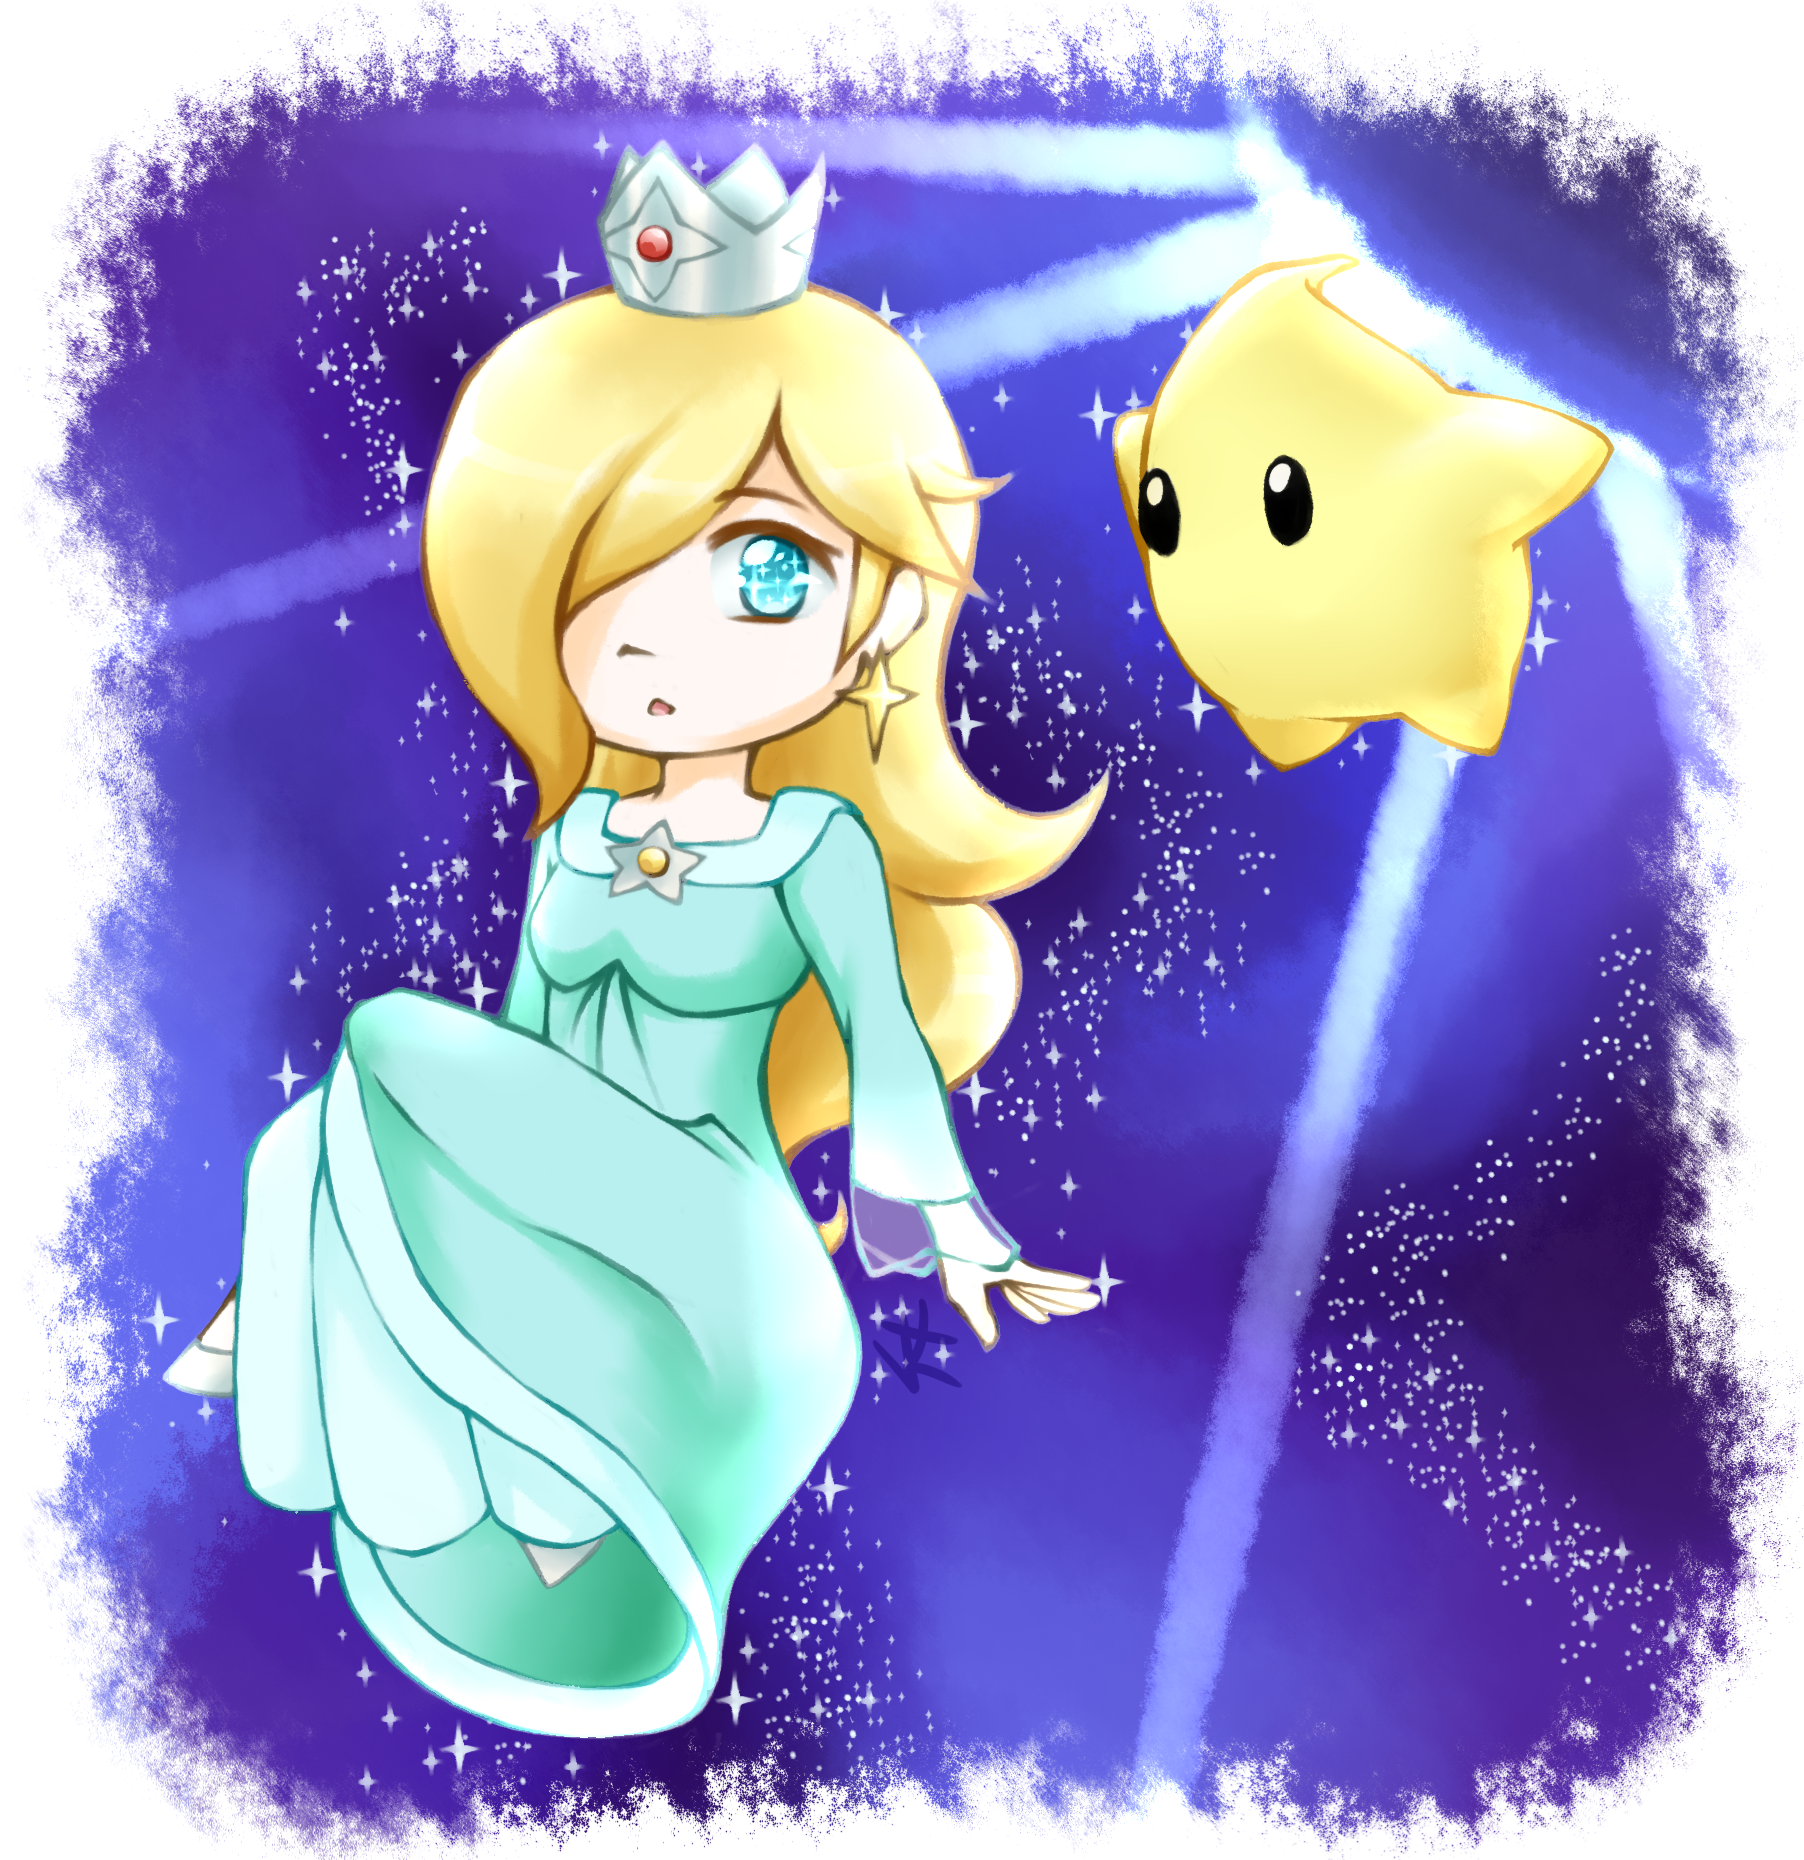 rosalina_and_luma_by_kirbyaustria d6yq18t additionally baby luigi on coloring pages of baby mario and luigi including coloring pages of baby mario and luigi 2 on coloring pages of baby mario and luigi moreover coloring pages of baby mario and luigi 3 on coloring pages of baby mario and luigi likewise coloring pages of baby mario and luigi 4 on coloring pages of baby mario and luigi